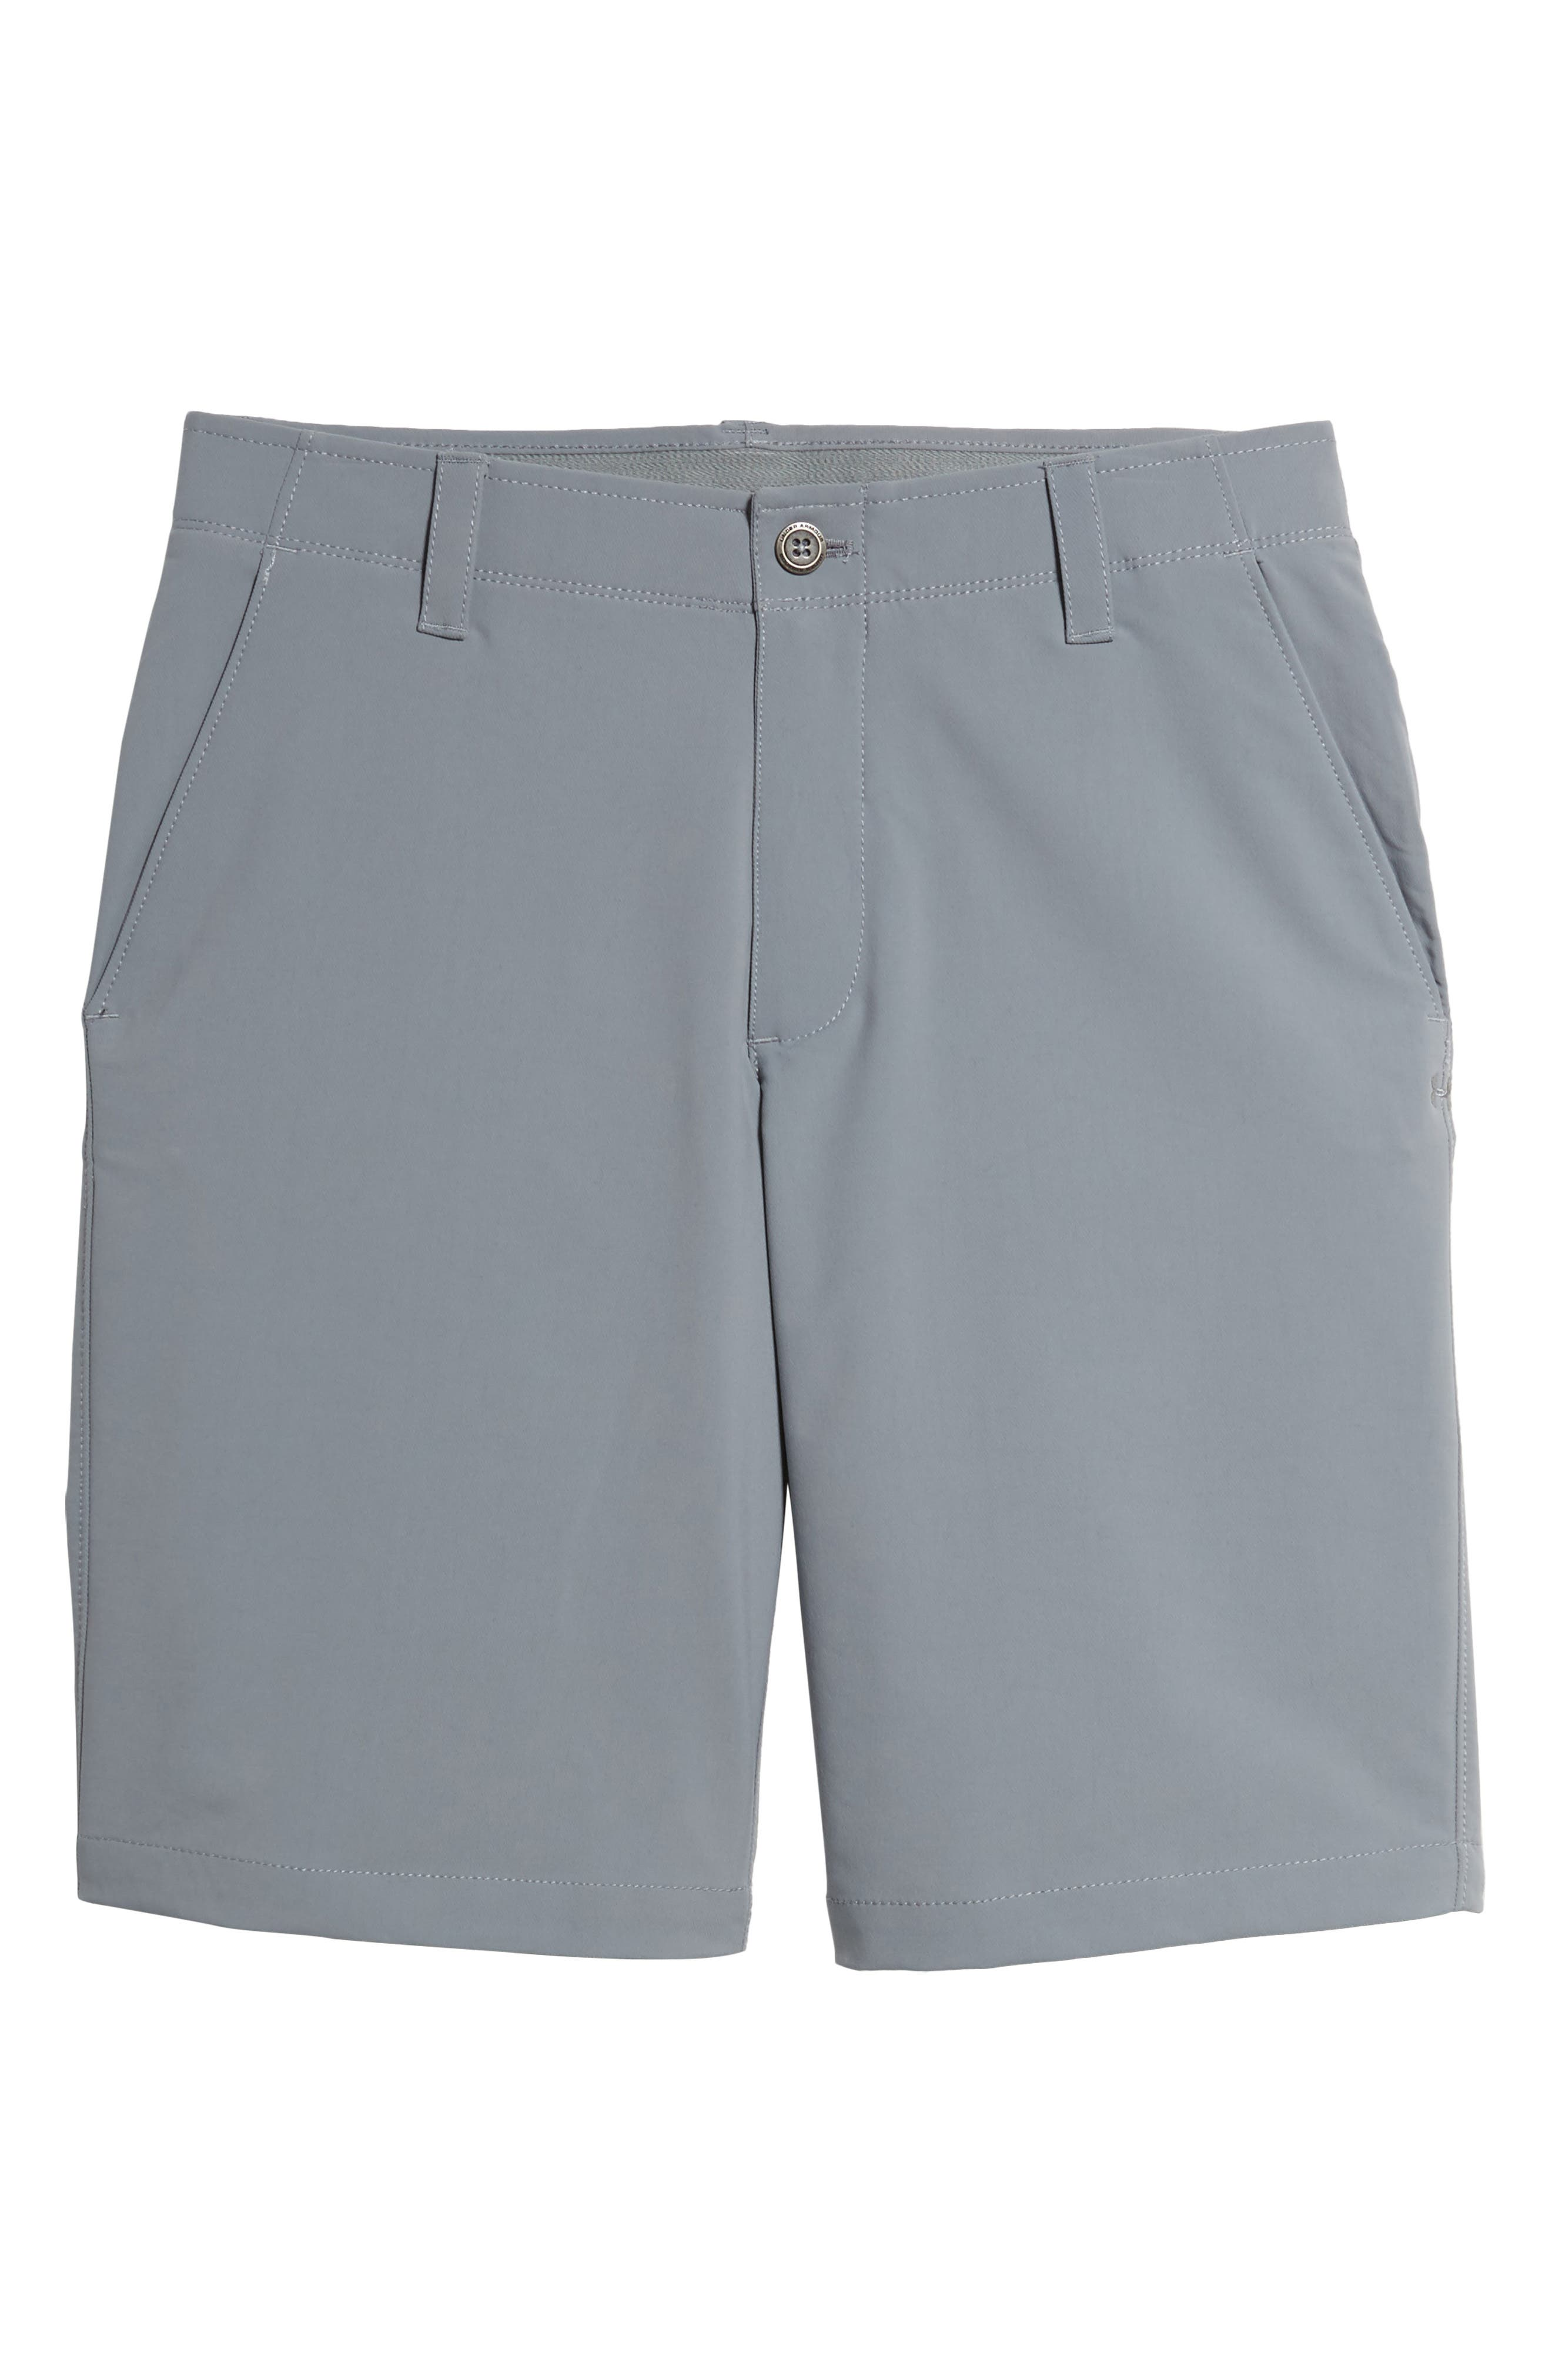 'Matchplay' Moisture Wicking Golf Shorts,                         Main,                         color, Steel